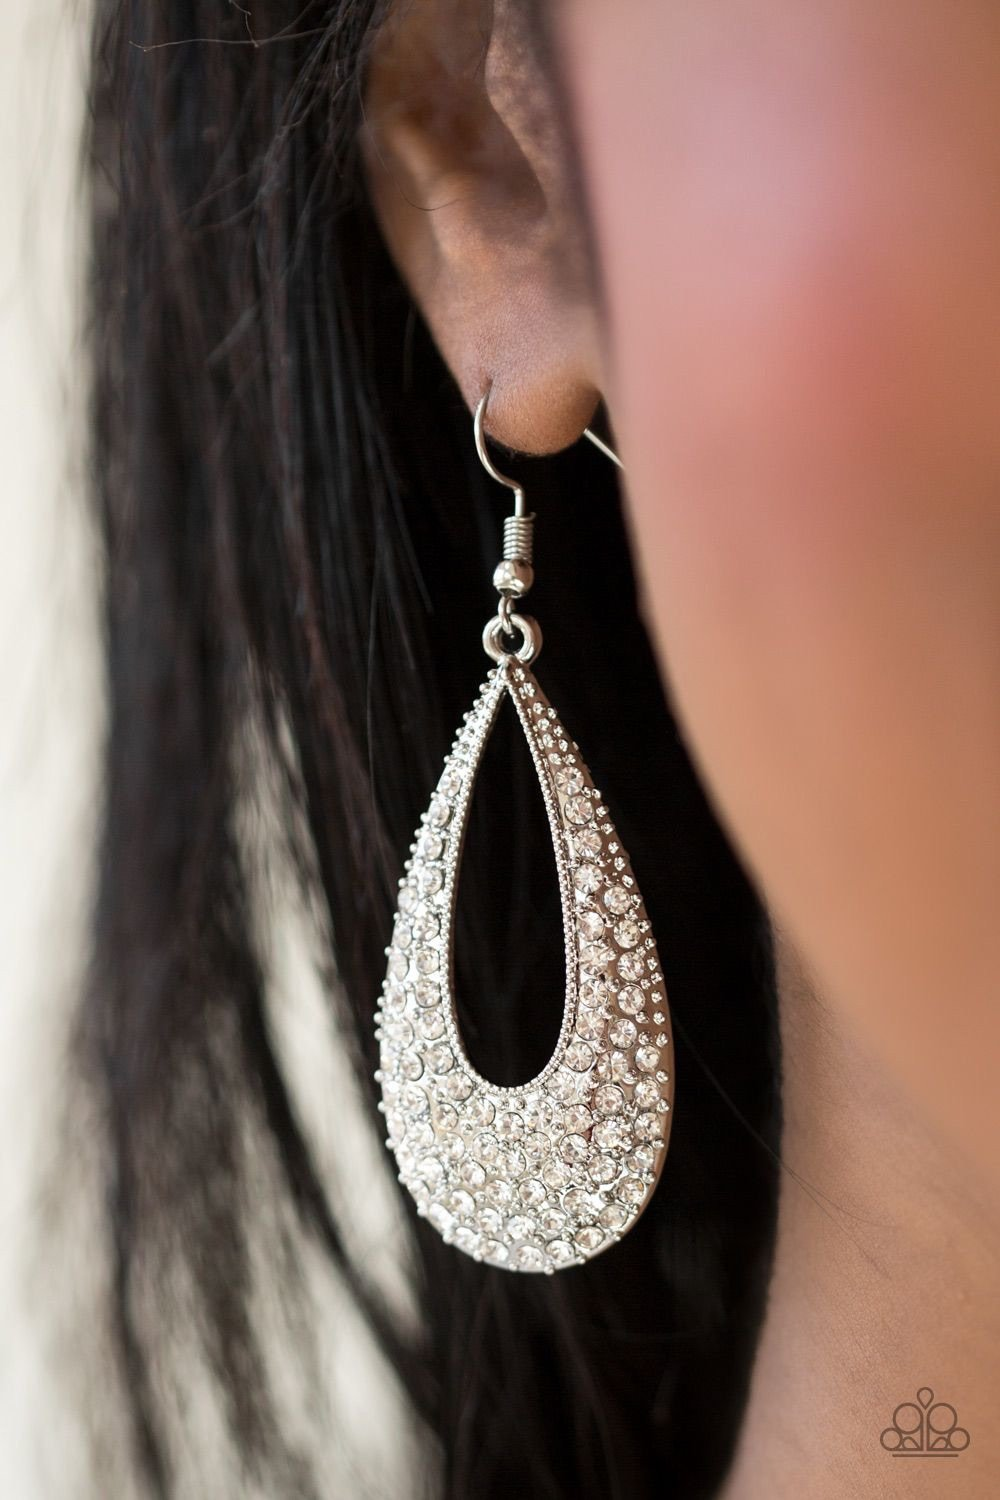 Big Time Spender Earring - White - Paparazzi Accessories - Pretty Girl Jewels